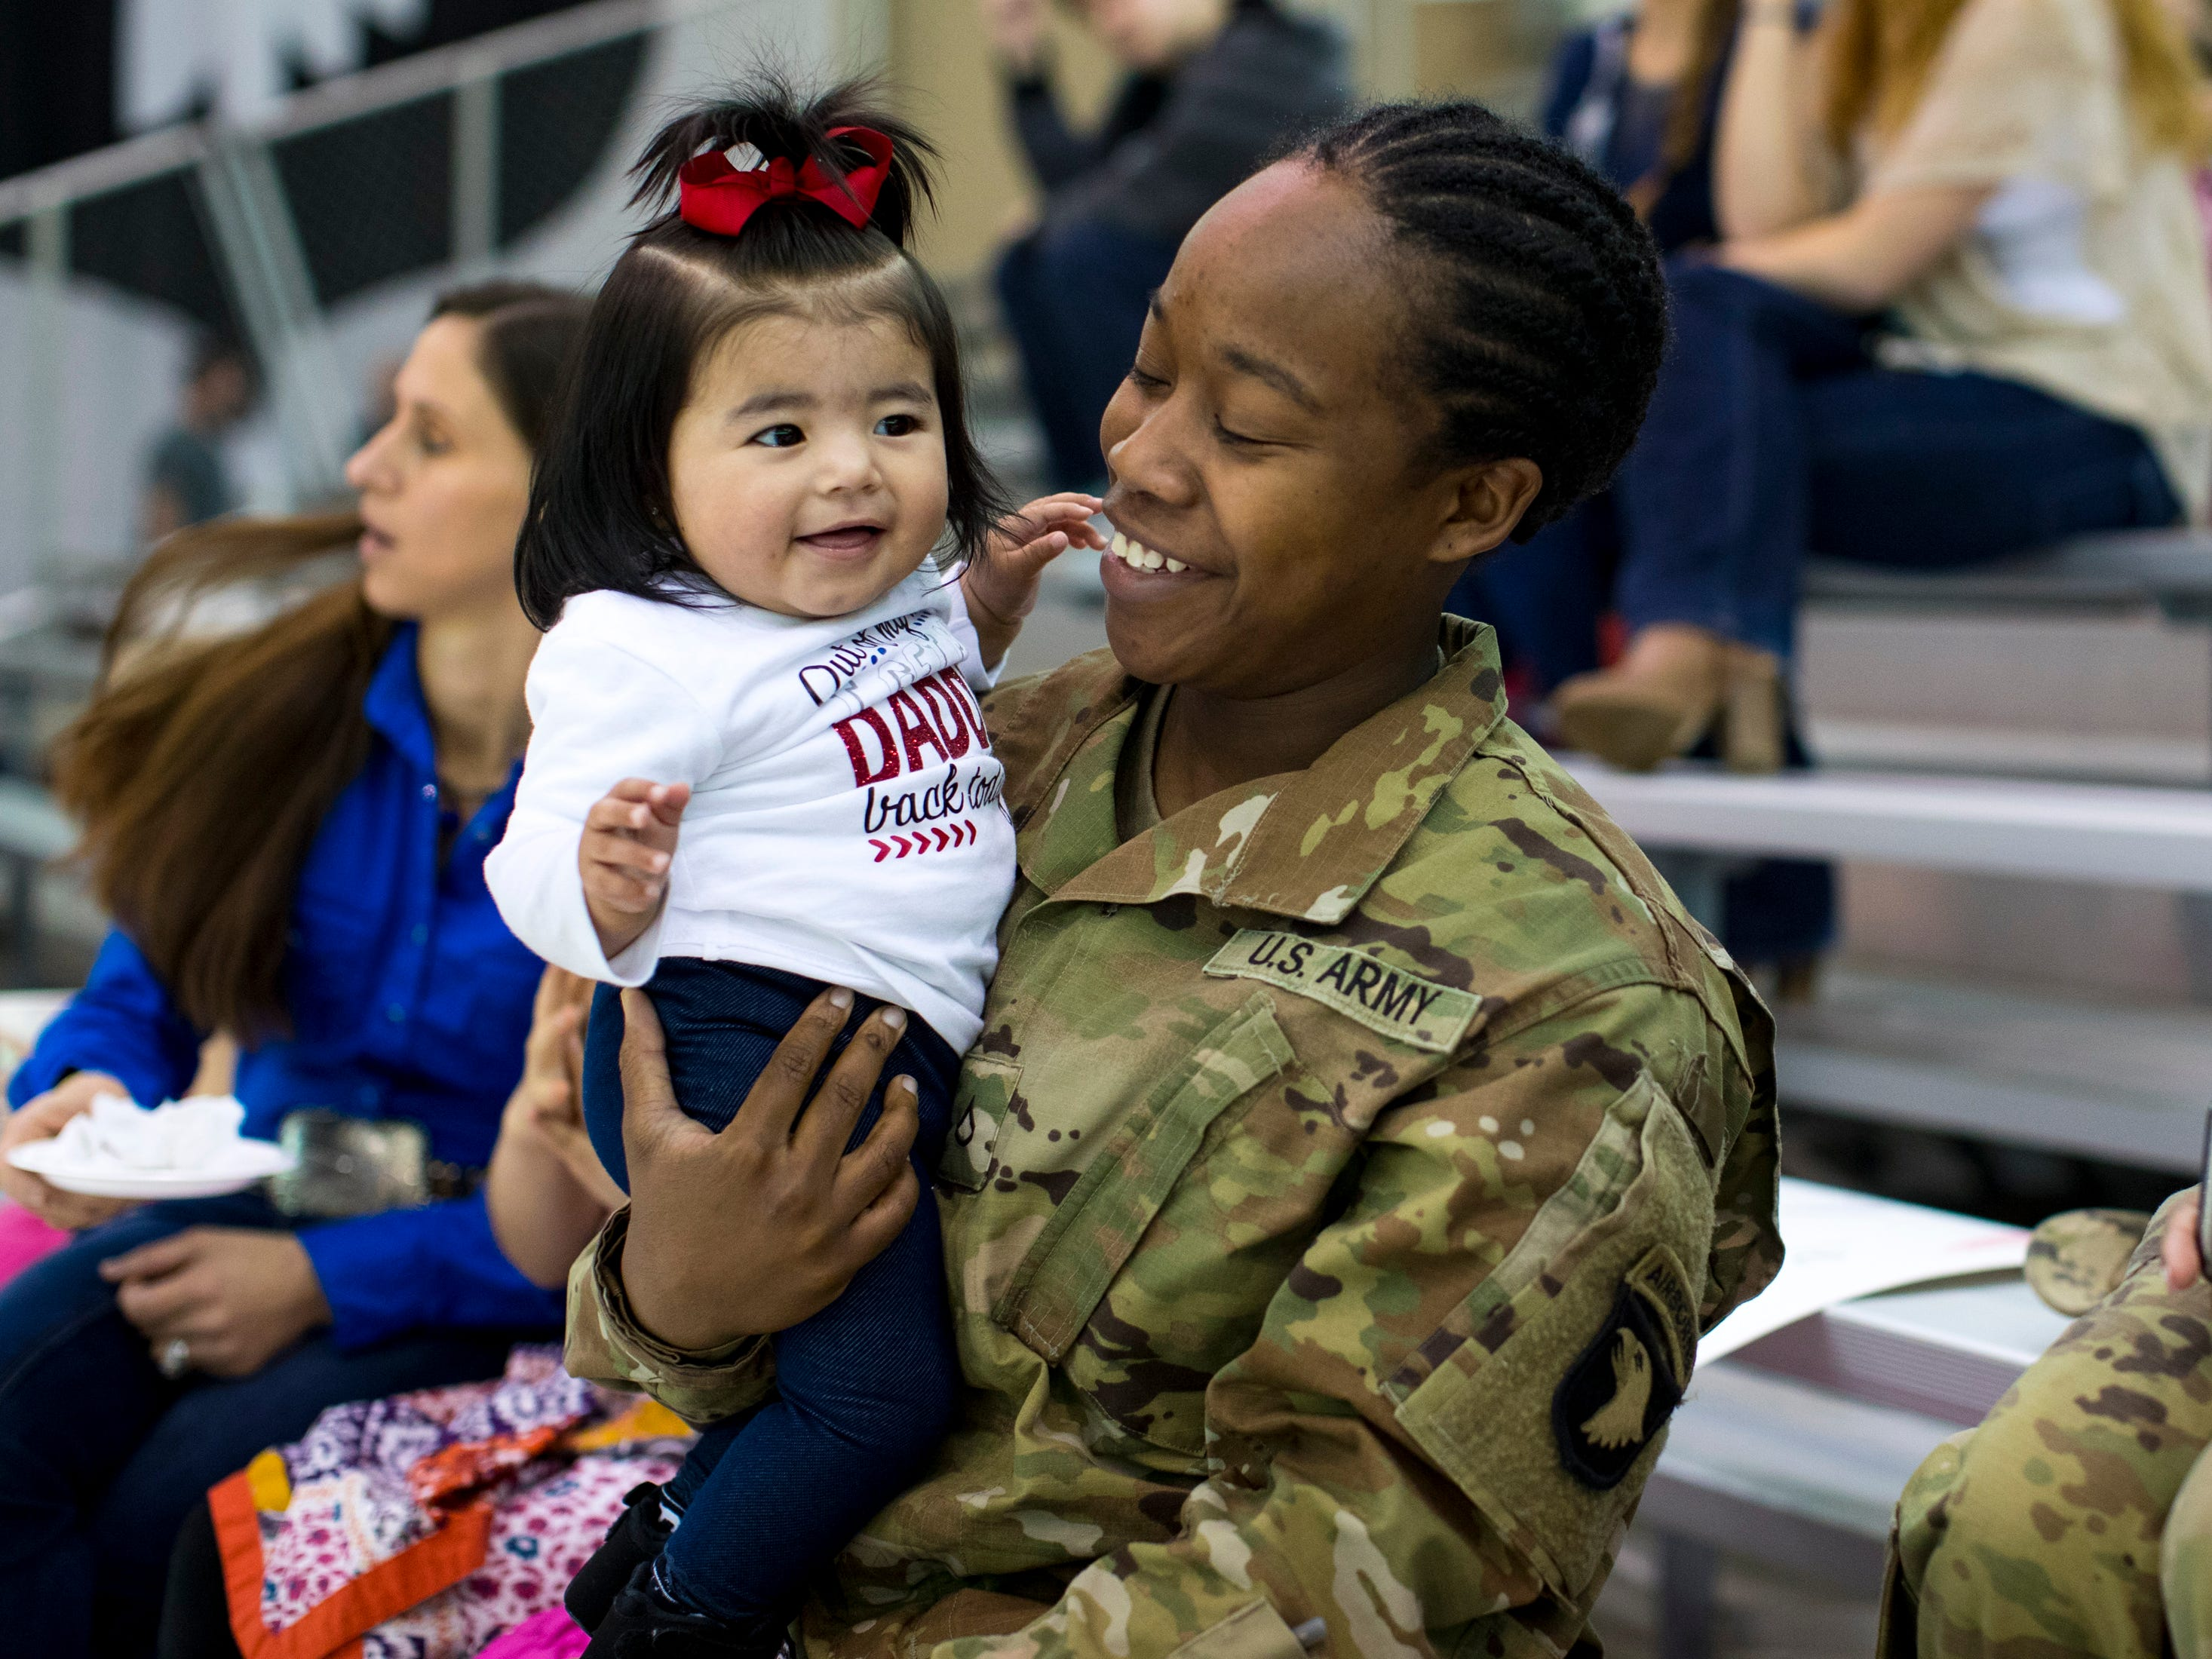 Private First Class Taneka Daniels holds Eliana Barajas, 8 months, during the welcome home ceremony for members of the 101st Combat Aviation Brigade at Fort Campbell in Clarksville on Tuesday, Feb. 5, 2019. The soldiers were returning from a nine-month deployment to Afghanistan.